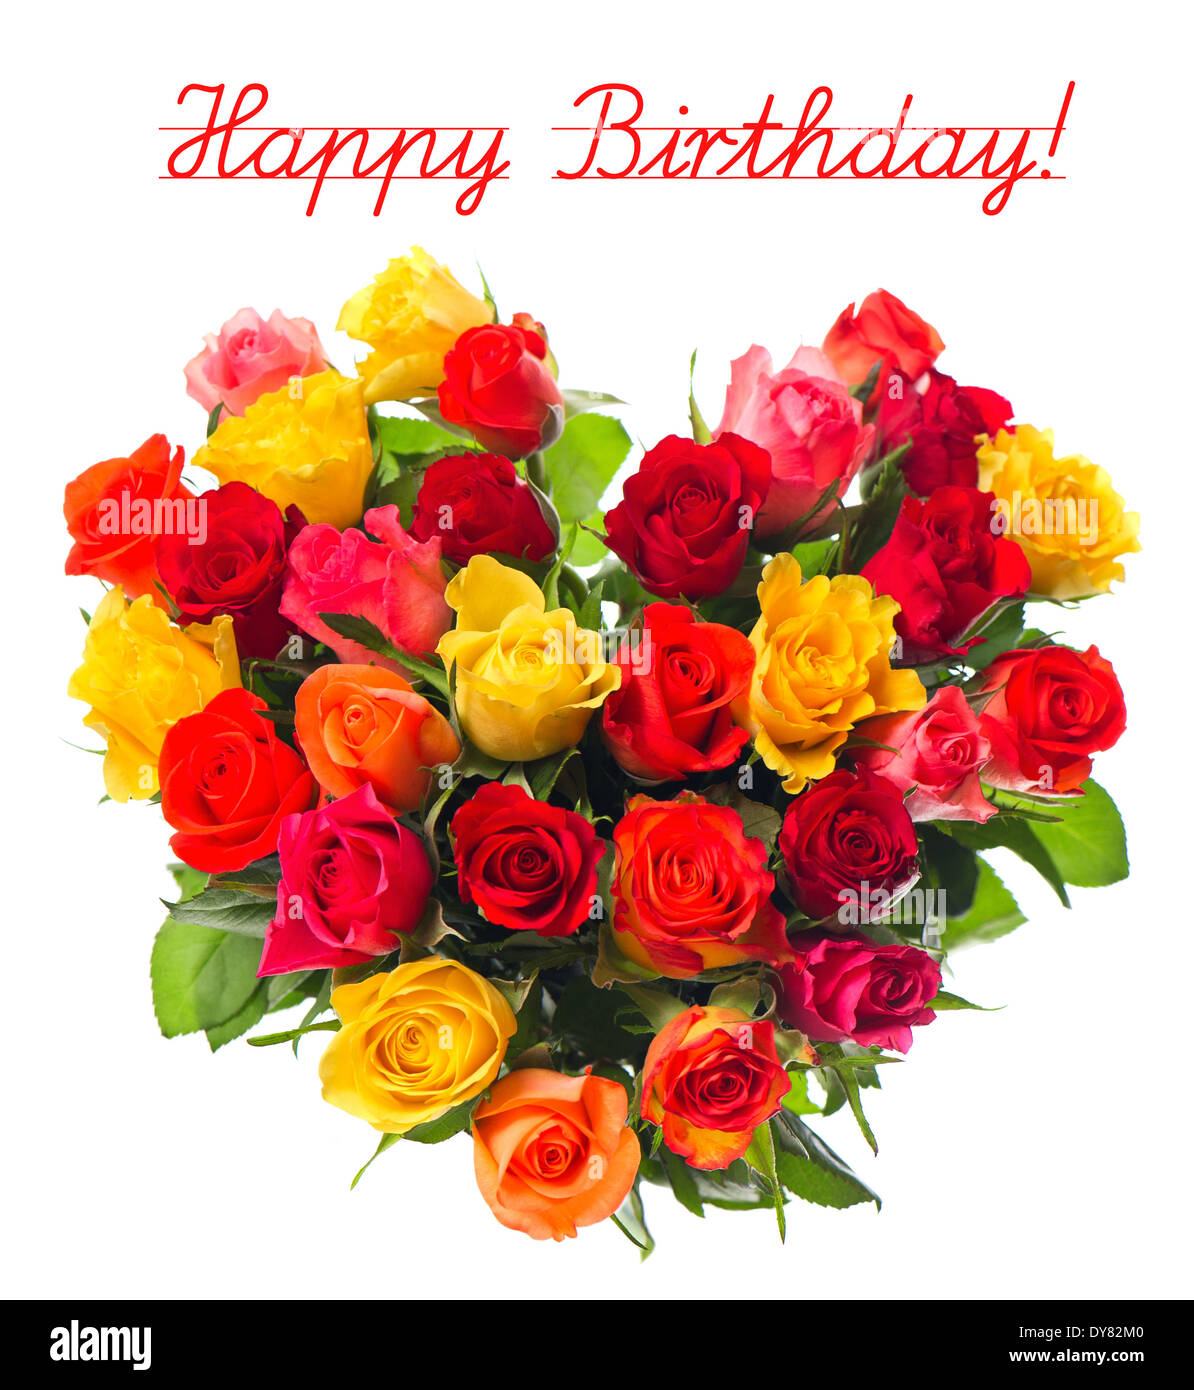 Birthday Roses Quotes: Happy Birthday! Card Concept, Bouquet Of Colorful Assorted